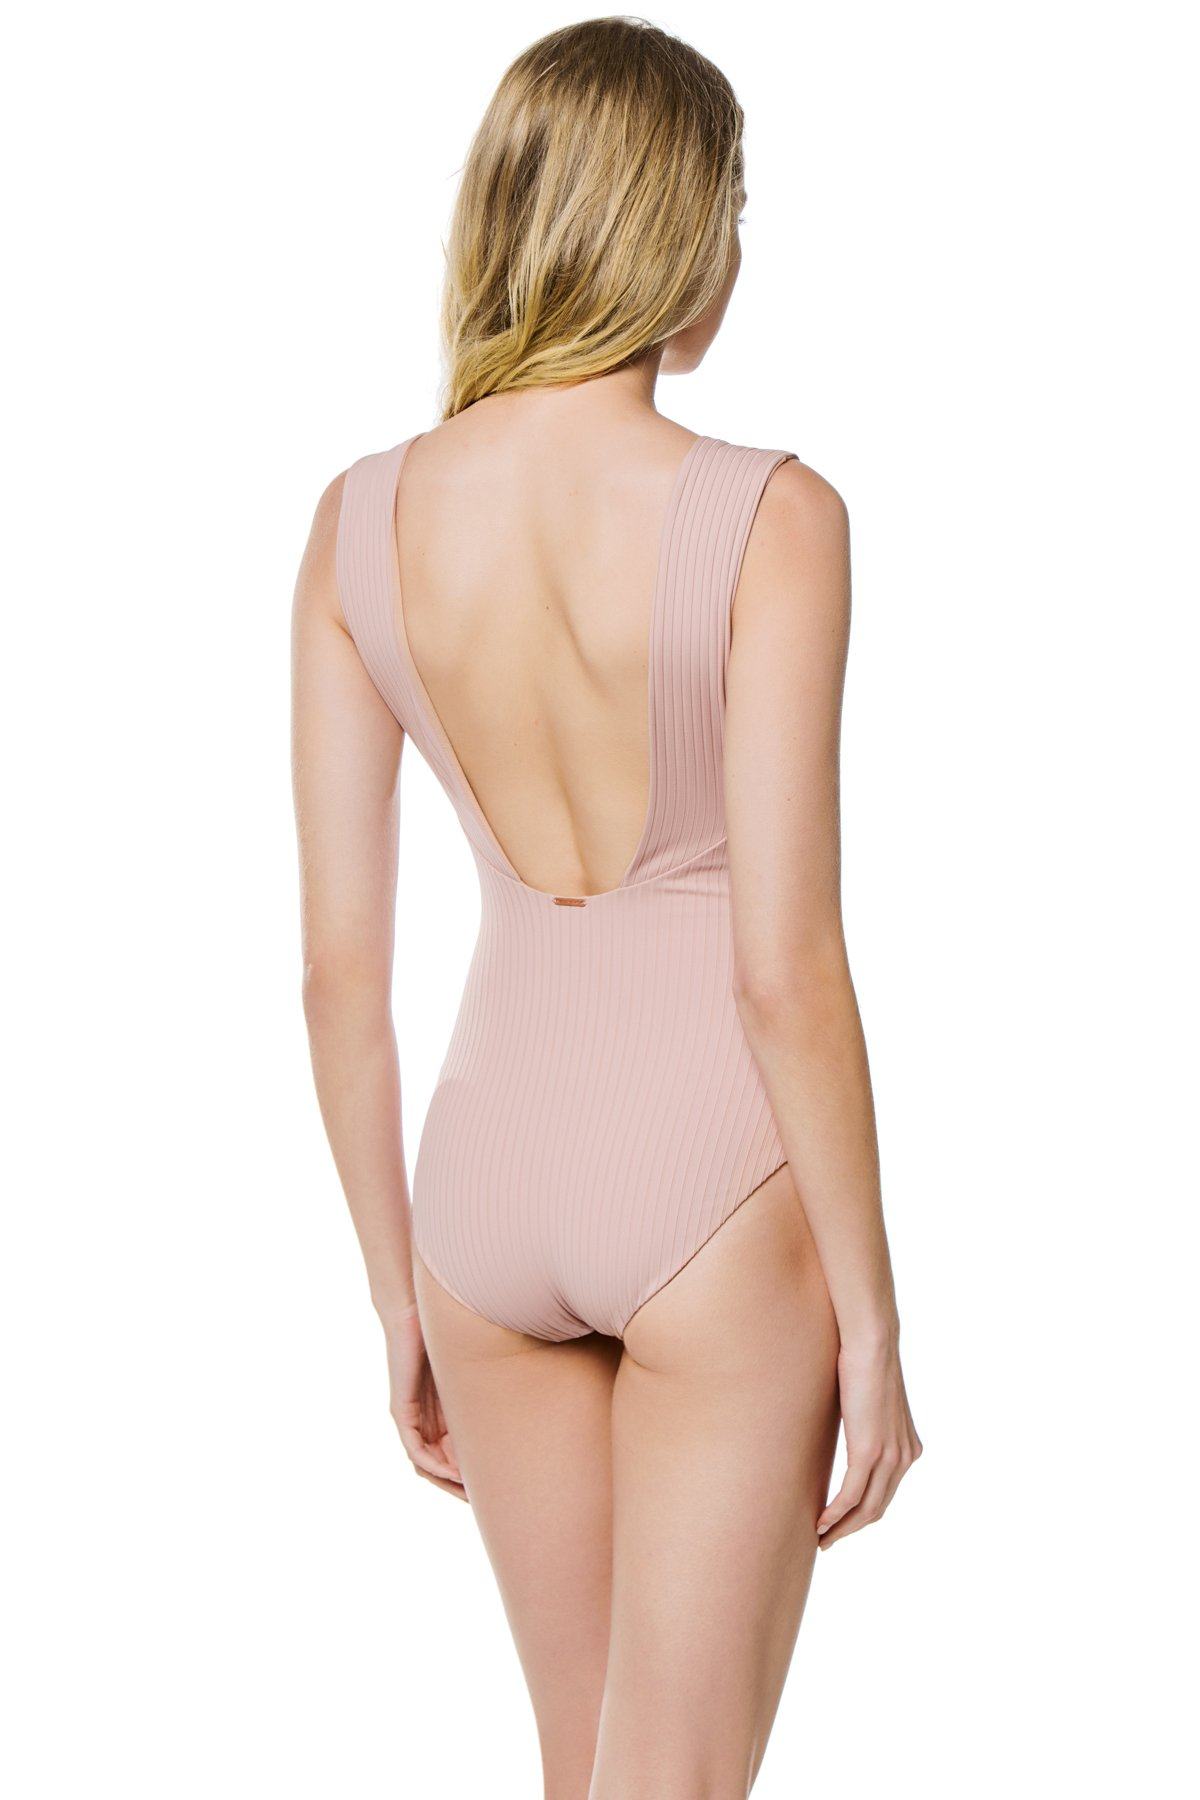 Grove Plunge Over The Shoulder One Piece Swimsuit - Naked Rib 2